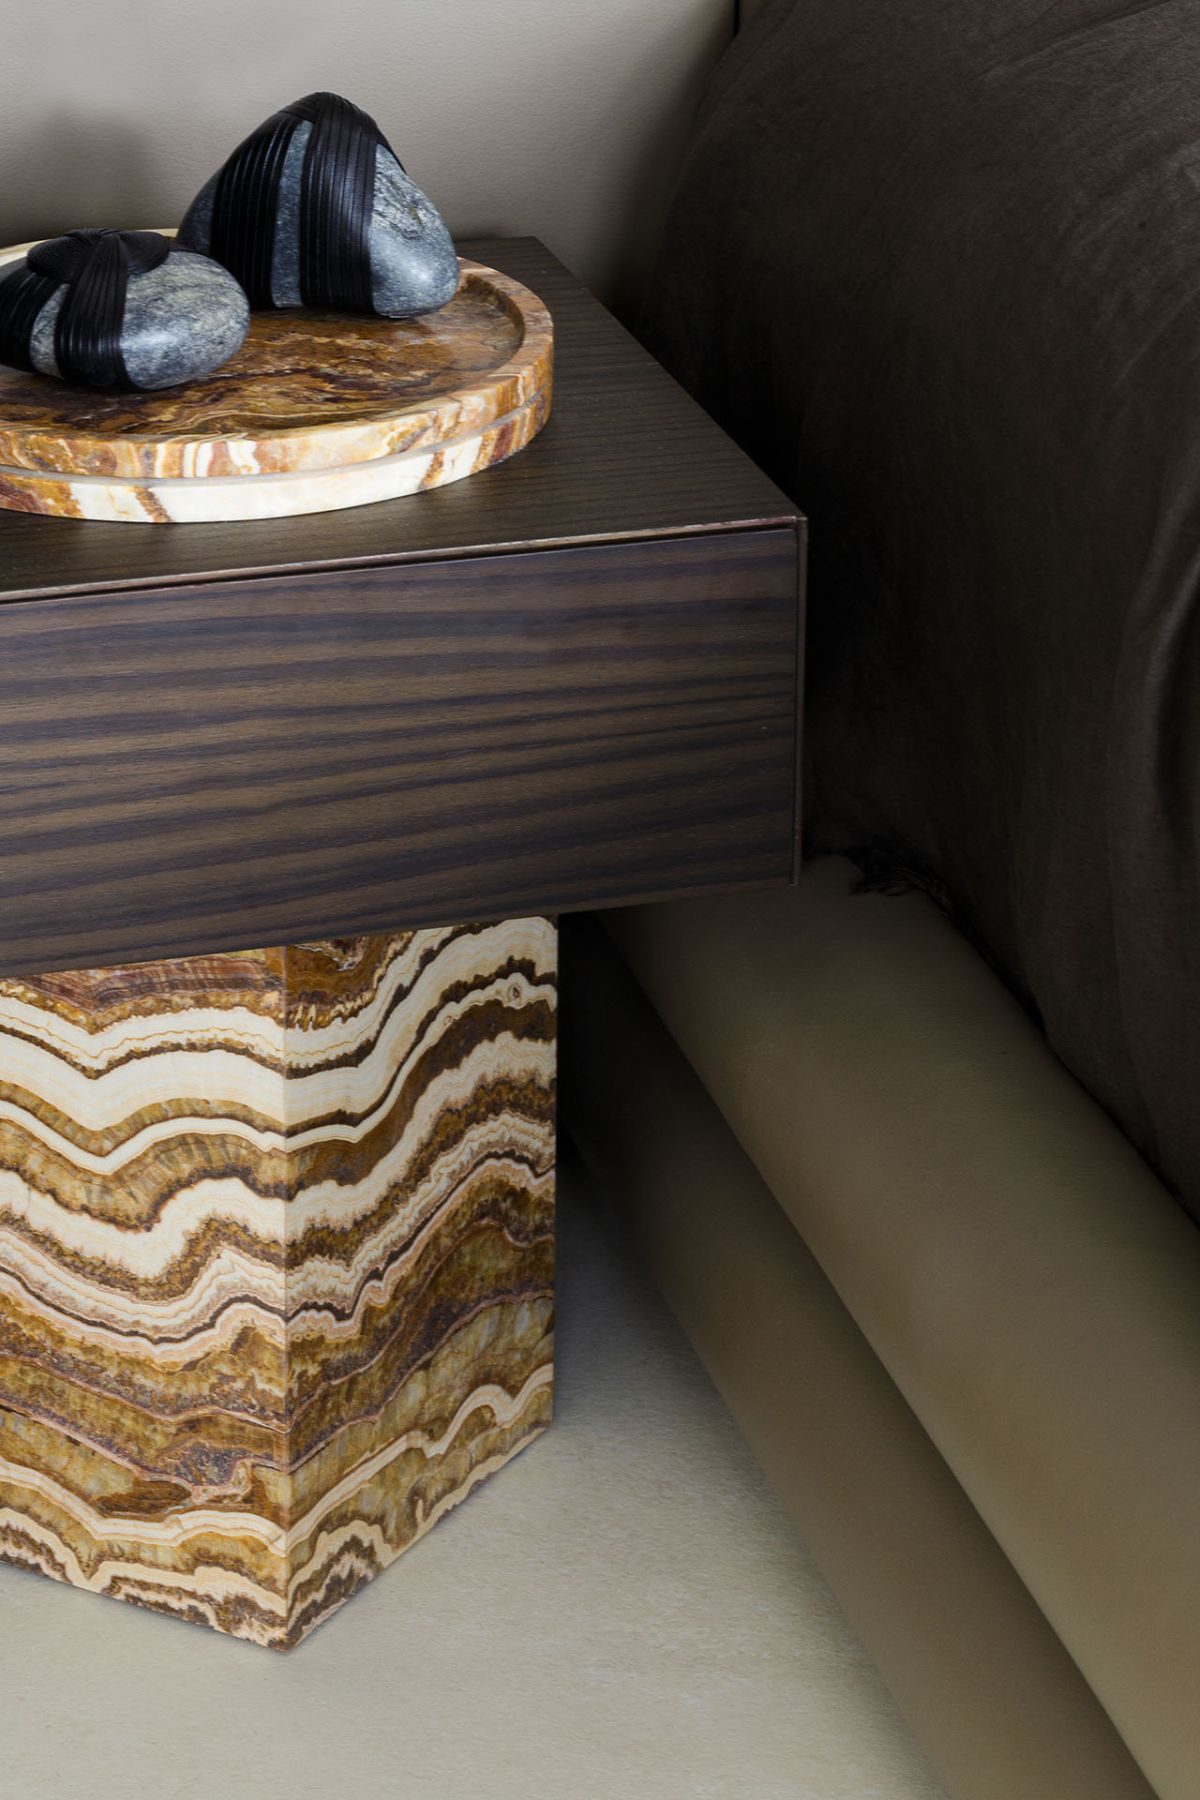 Custom nightstands made of wood and marble establish a harmonious connection between the bedroom and the bathroom's design